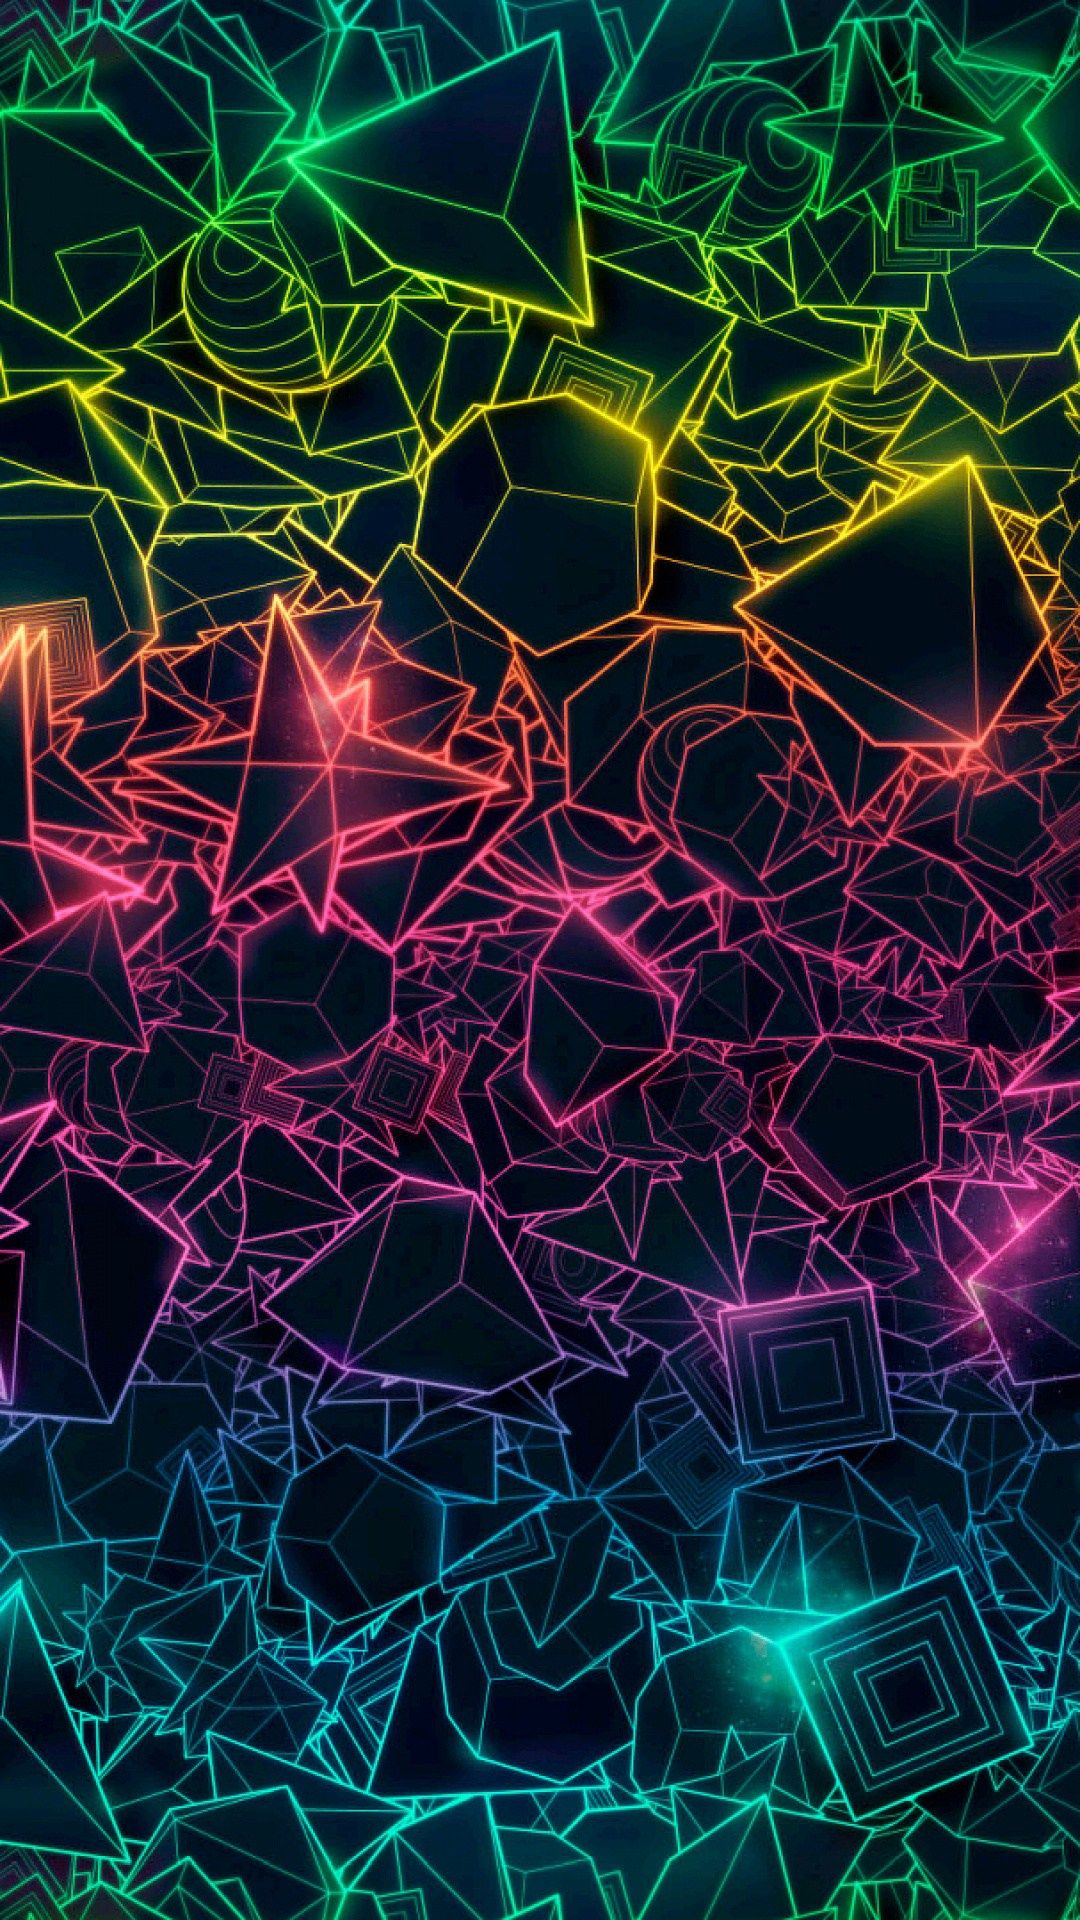 Colorful Geometric Trippy Iphone Wallpaper In 2019